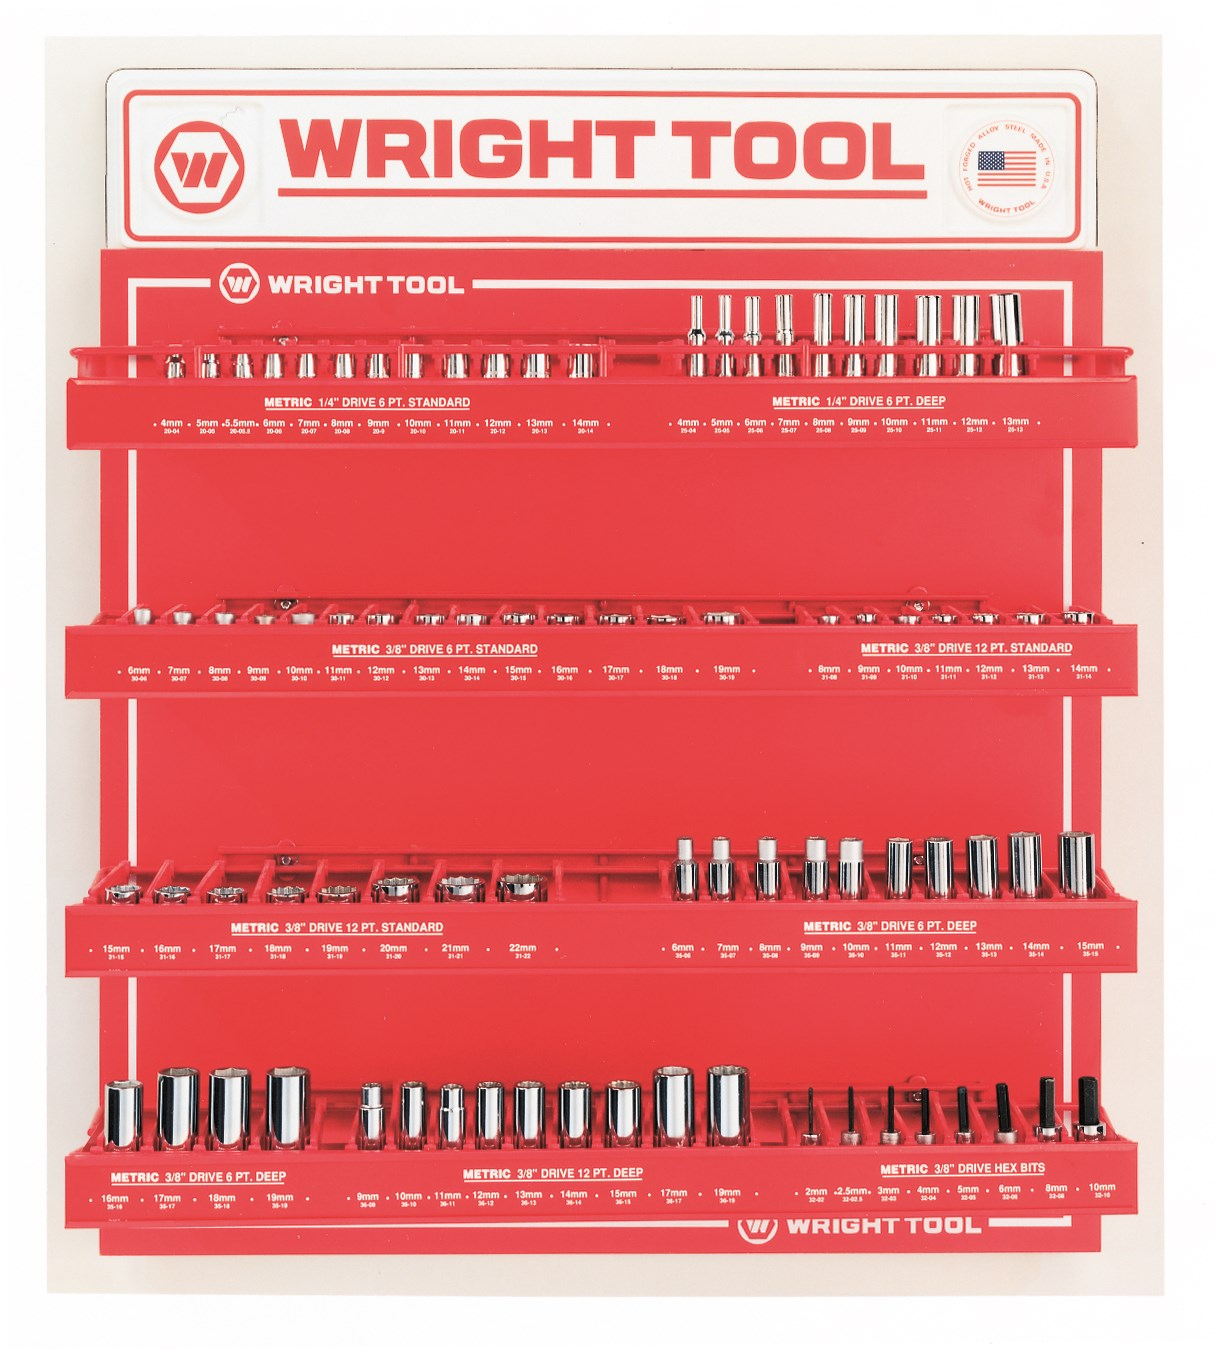 Wright Tool D957 78 Piece Metric 1/4-inch & 3/8-inch Drive 6 & 12-Point Sockets